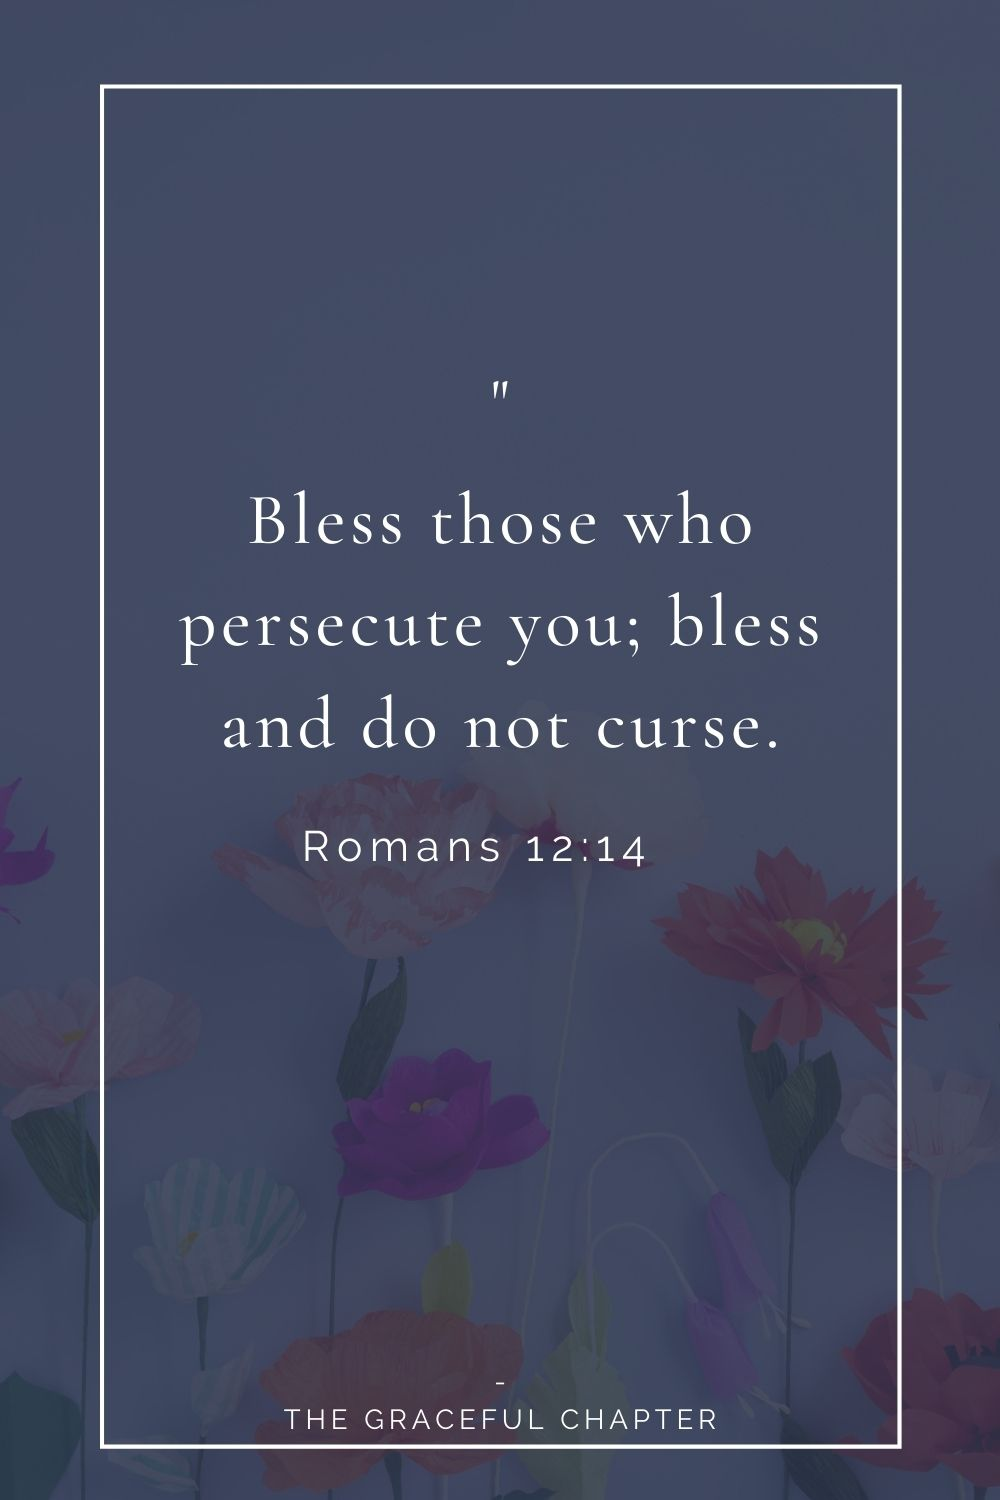 Bless those who persecute you; bless and do not curse. Romans 12:14